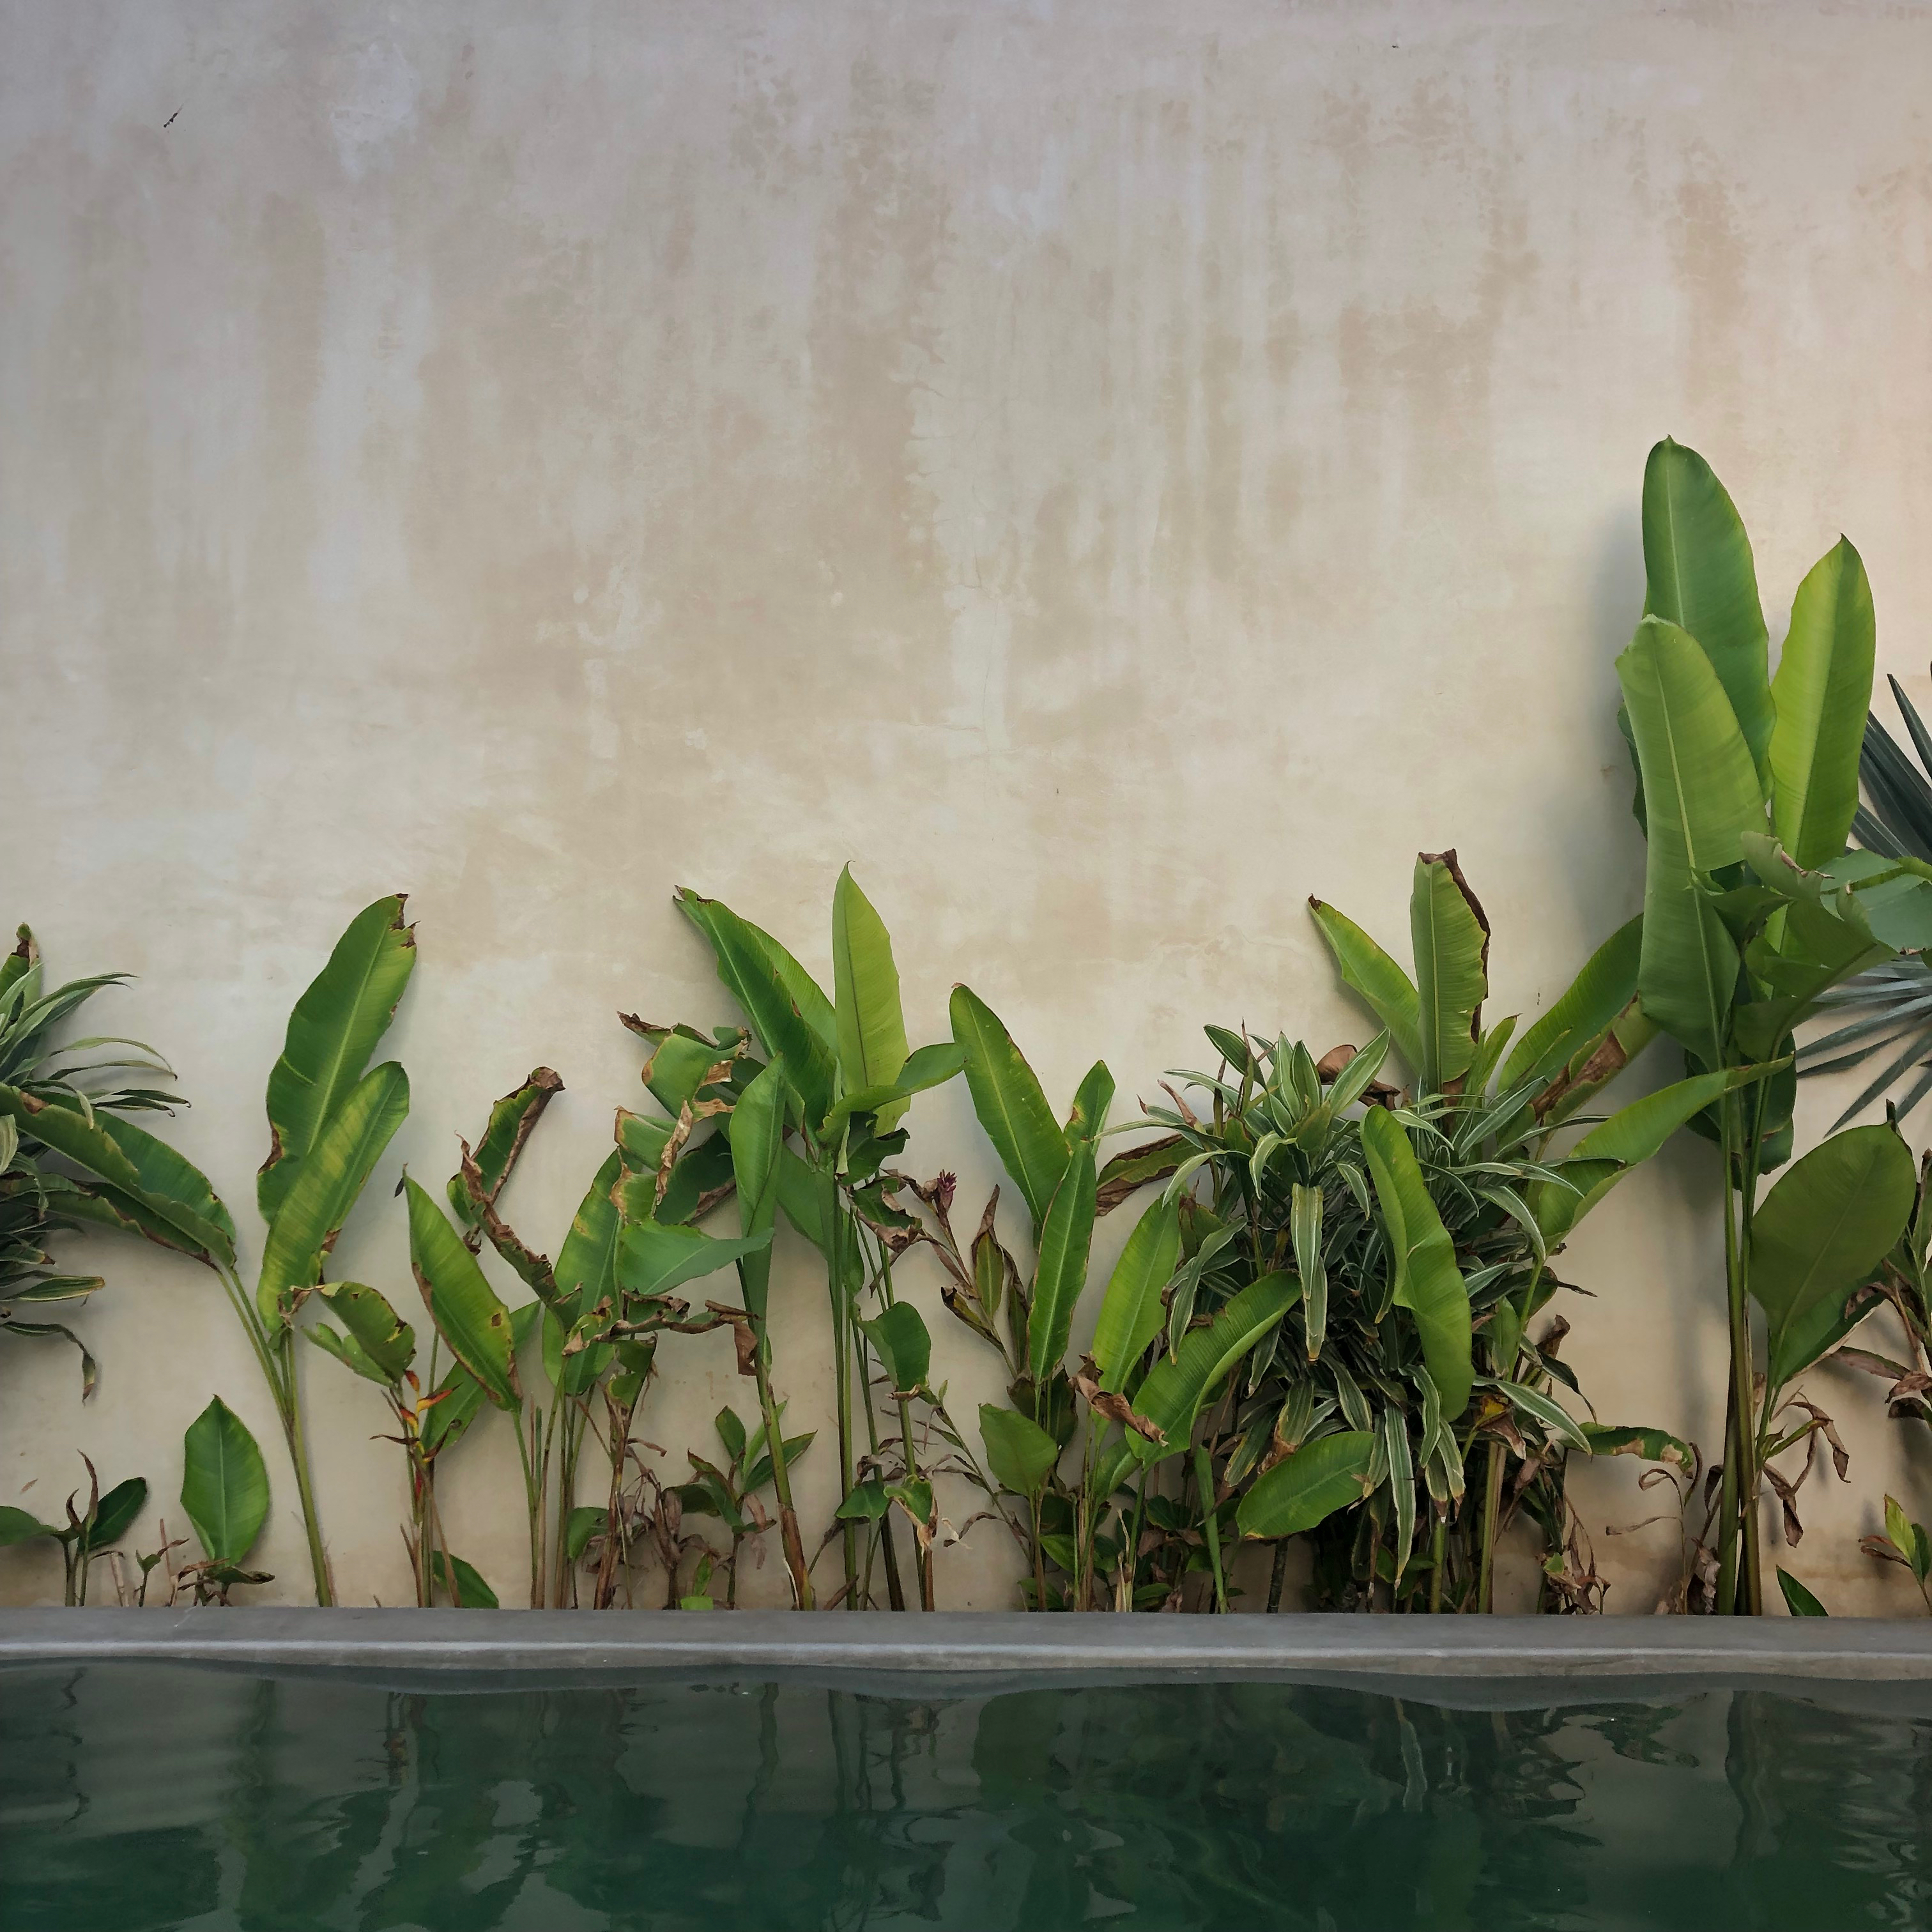 Plants growing at the edge of a pool in Cancún, Mexico.